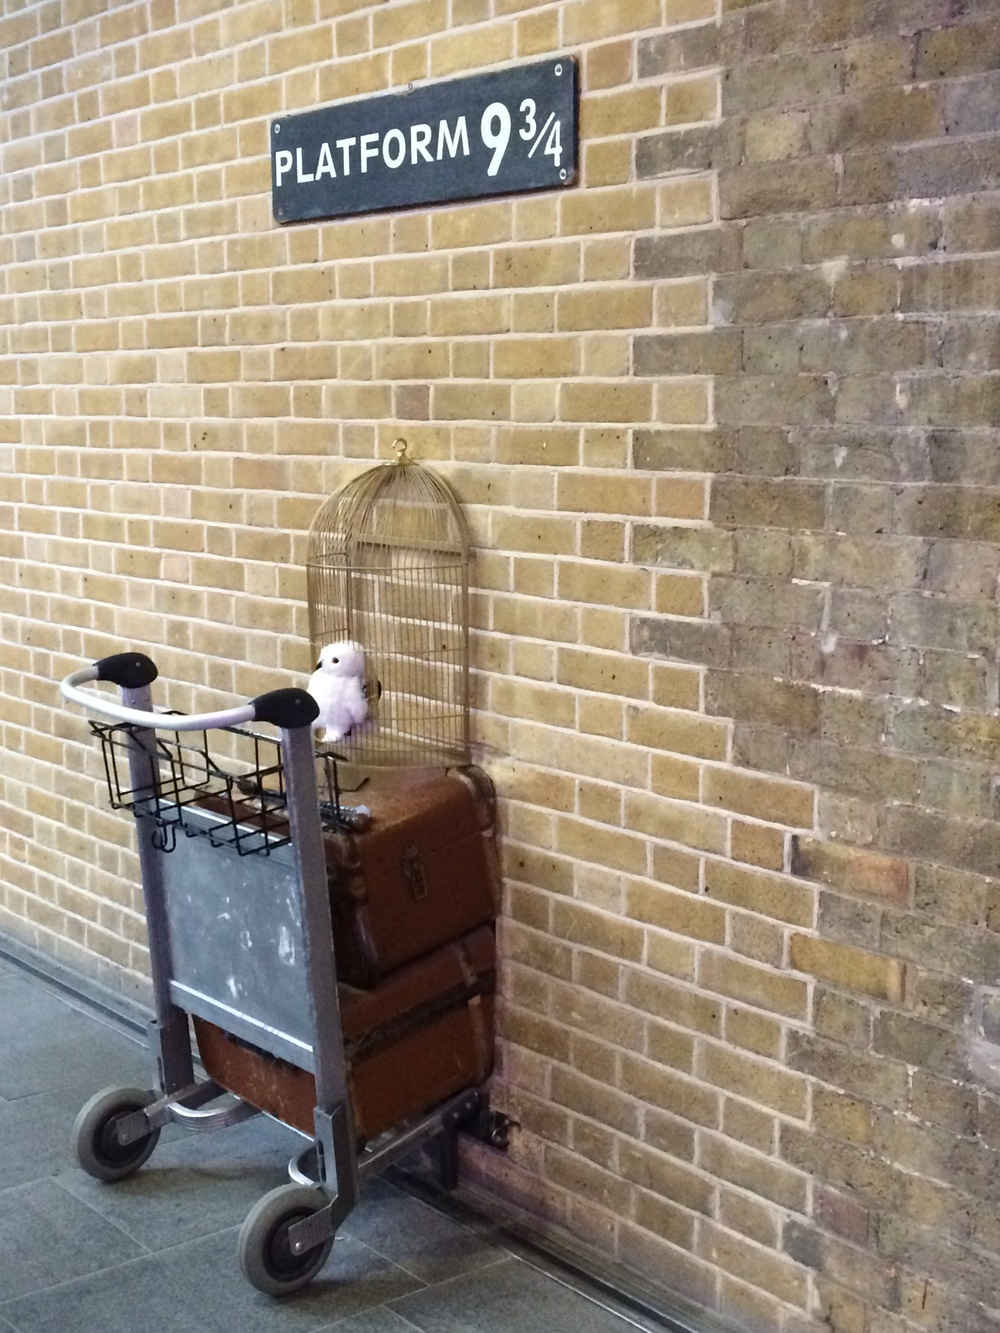 Harry Potter's cart at Platform 9 3/4 at King's Cross Station